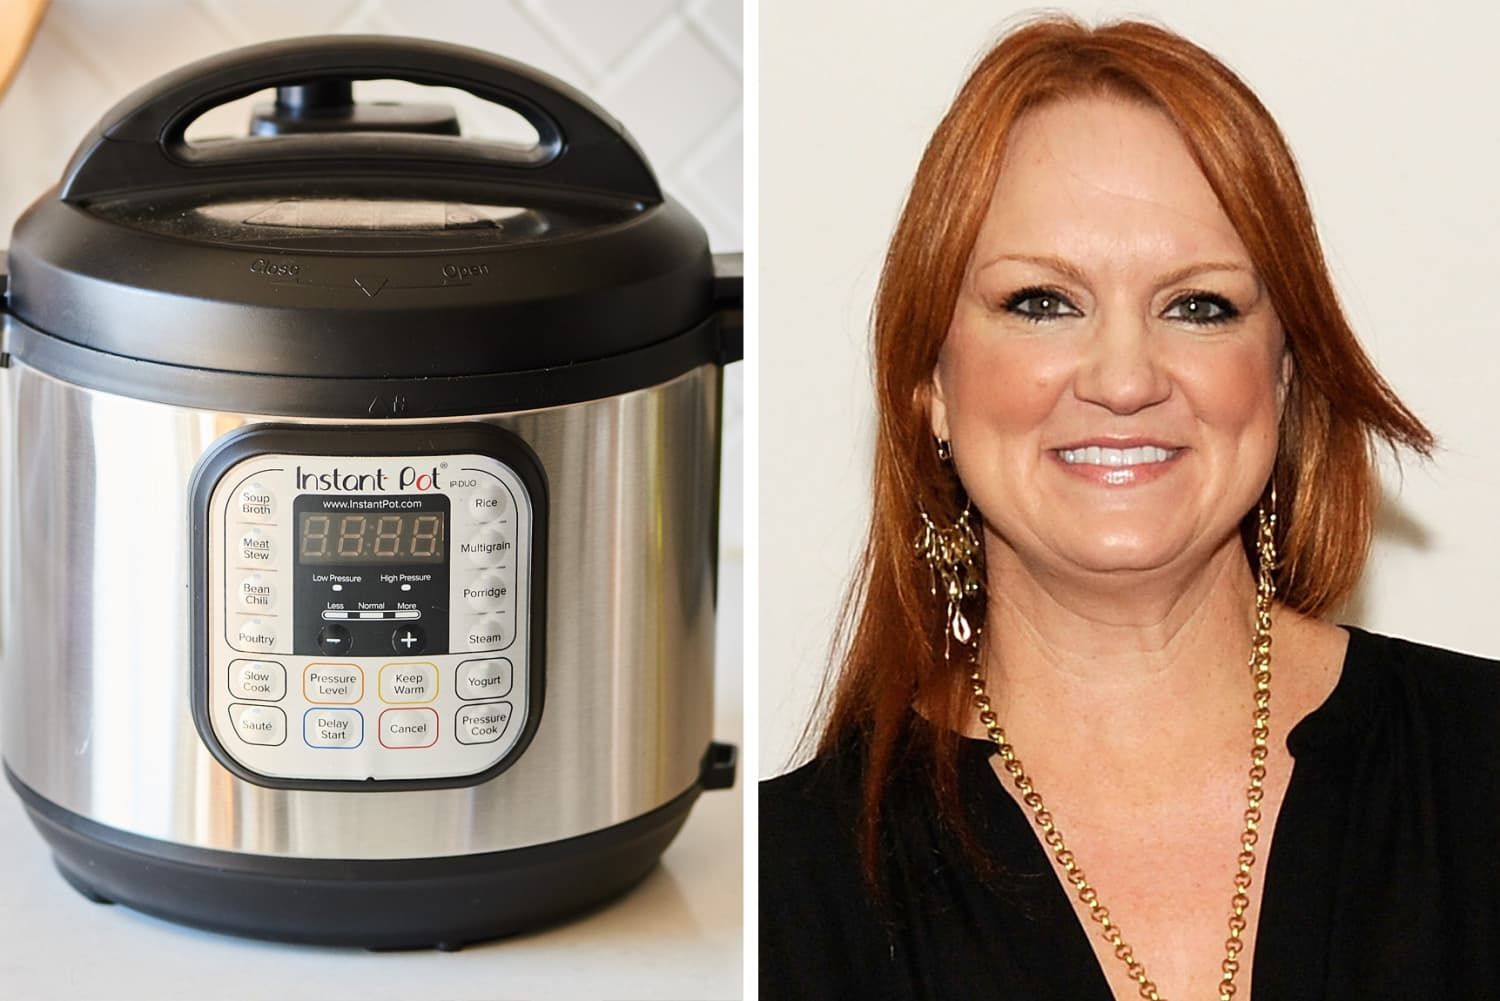 The Best Pioneer Woman Instant Pot Recipes for Cold Nights